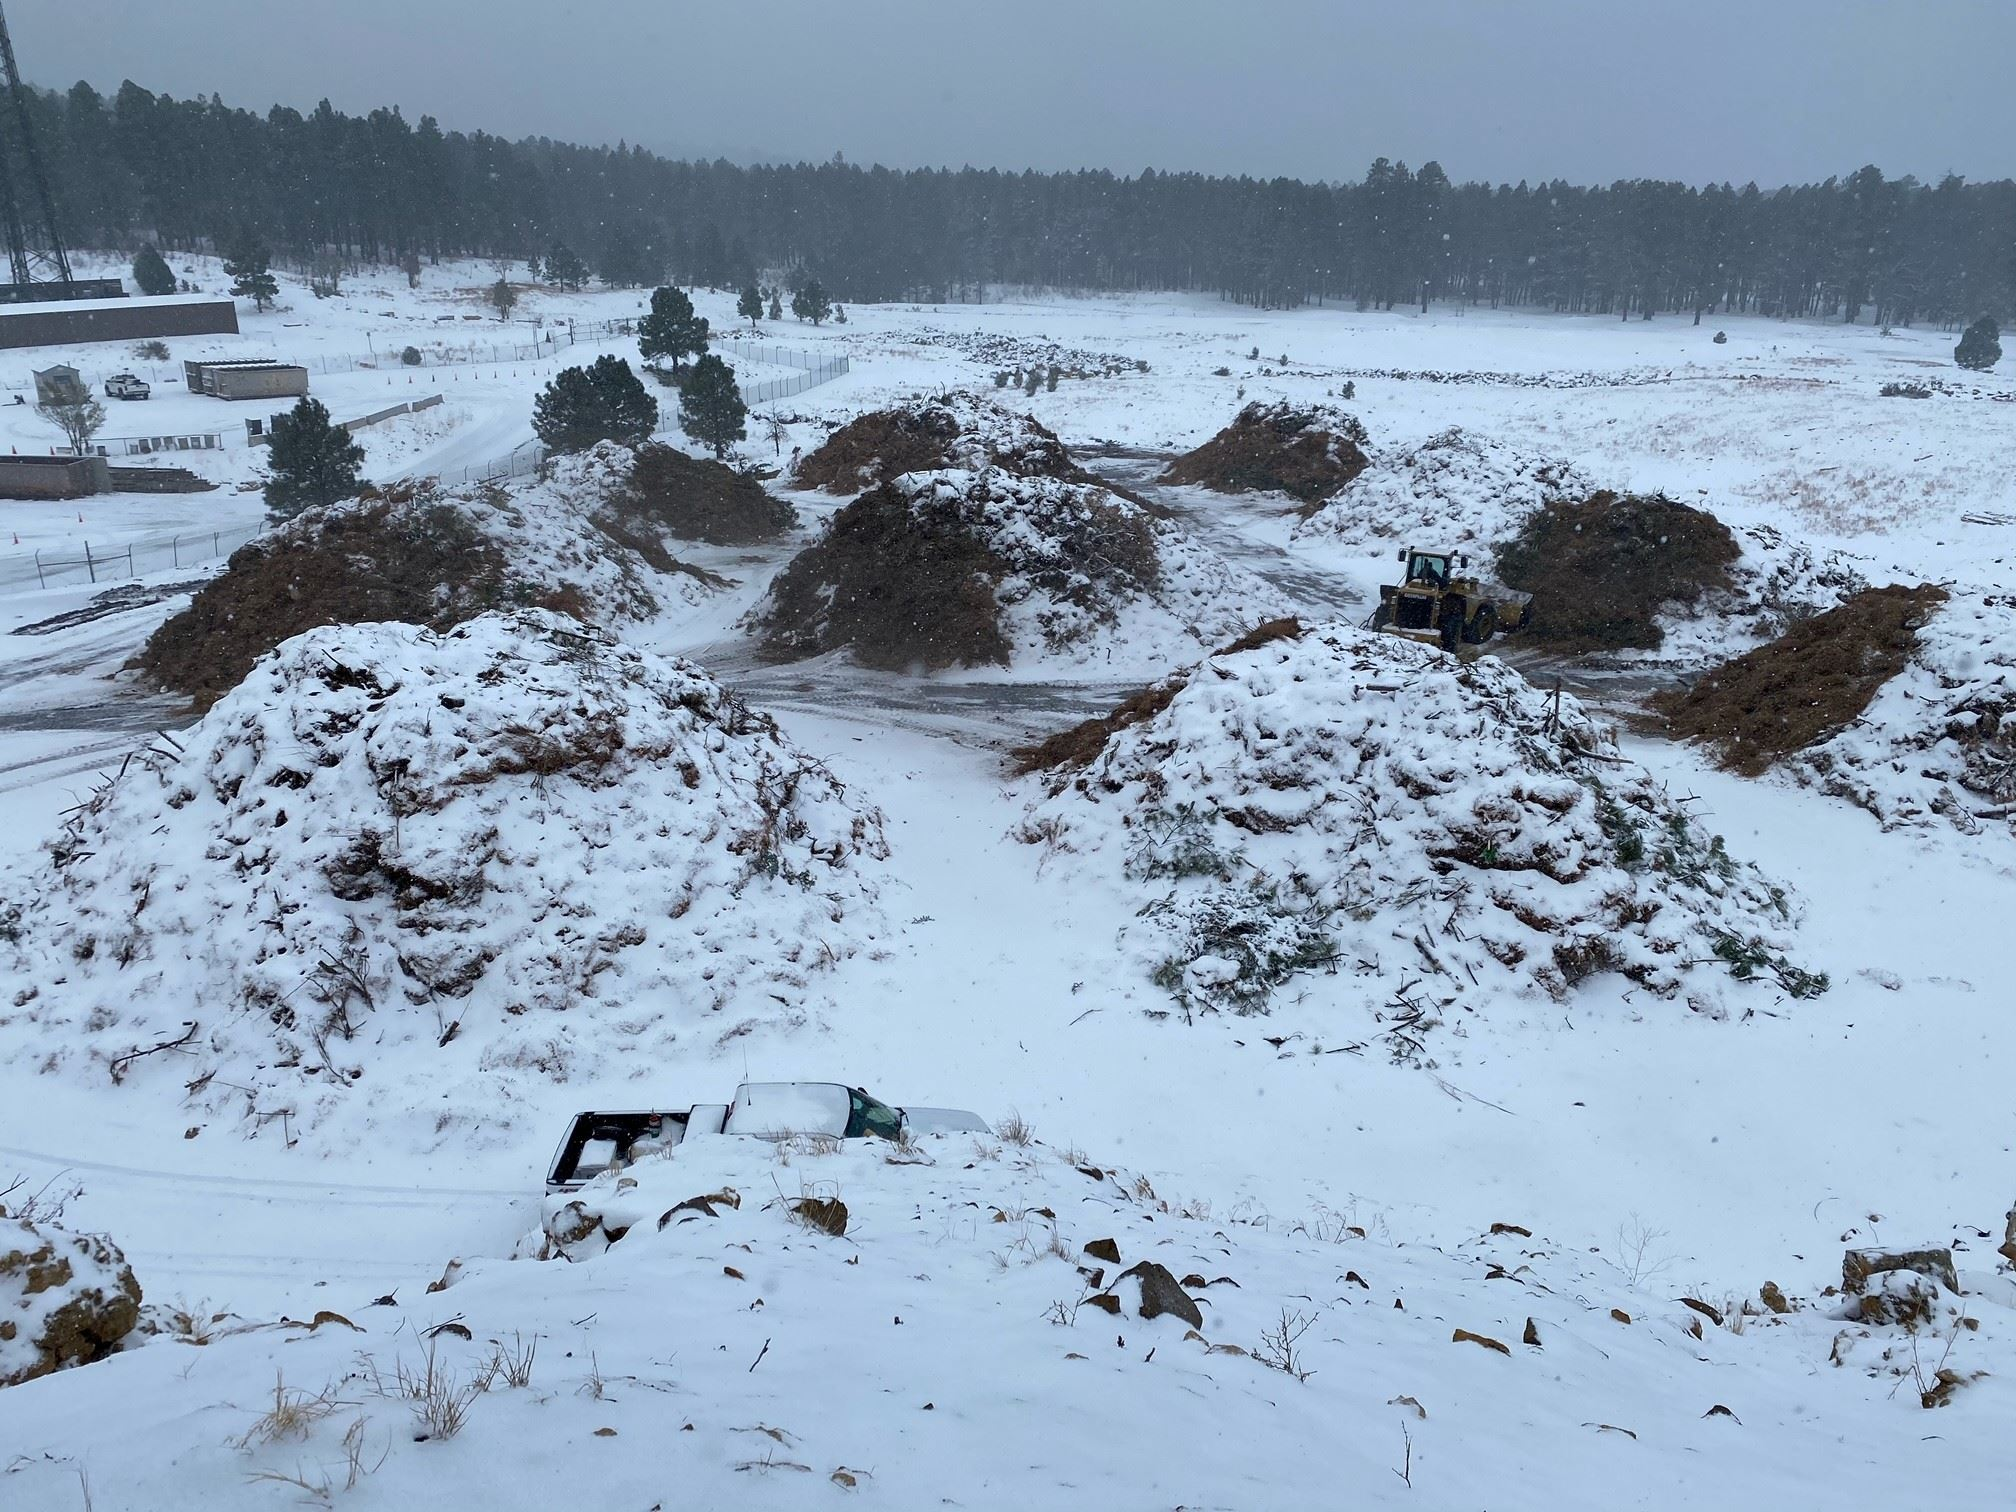 Large piles of green waste covered by light layer of snow.